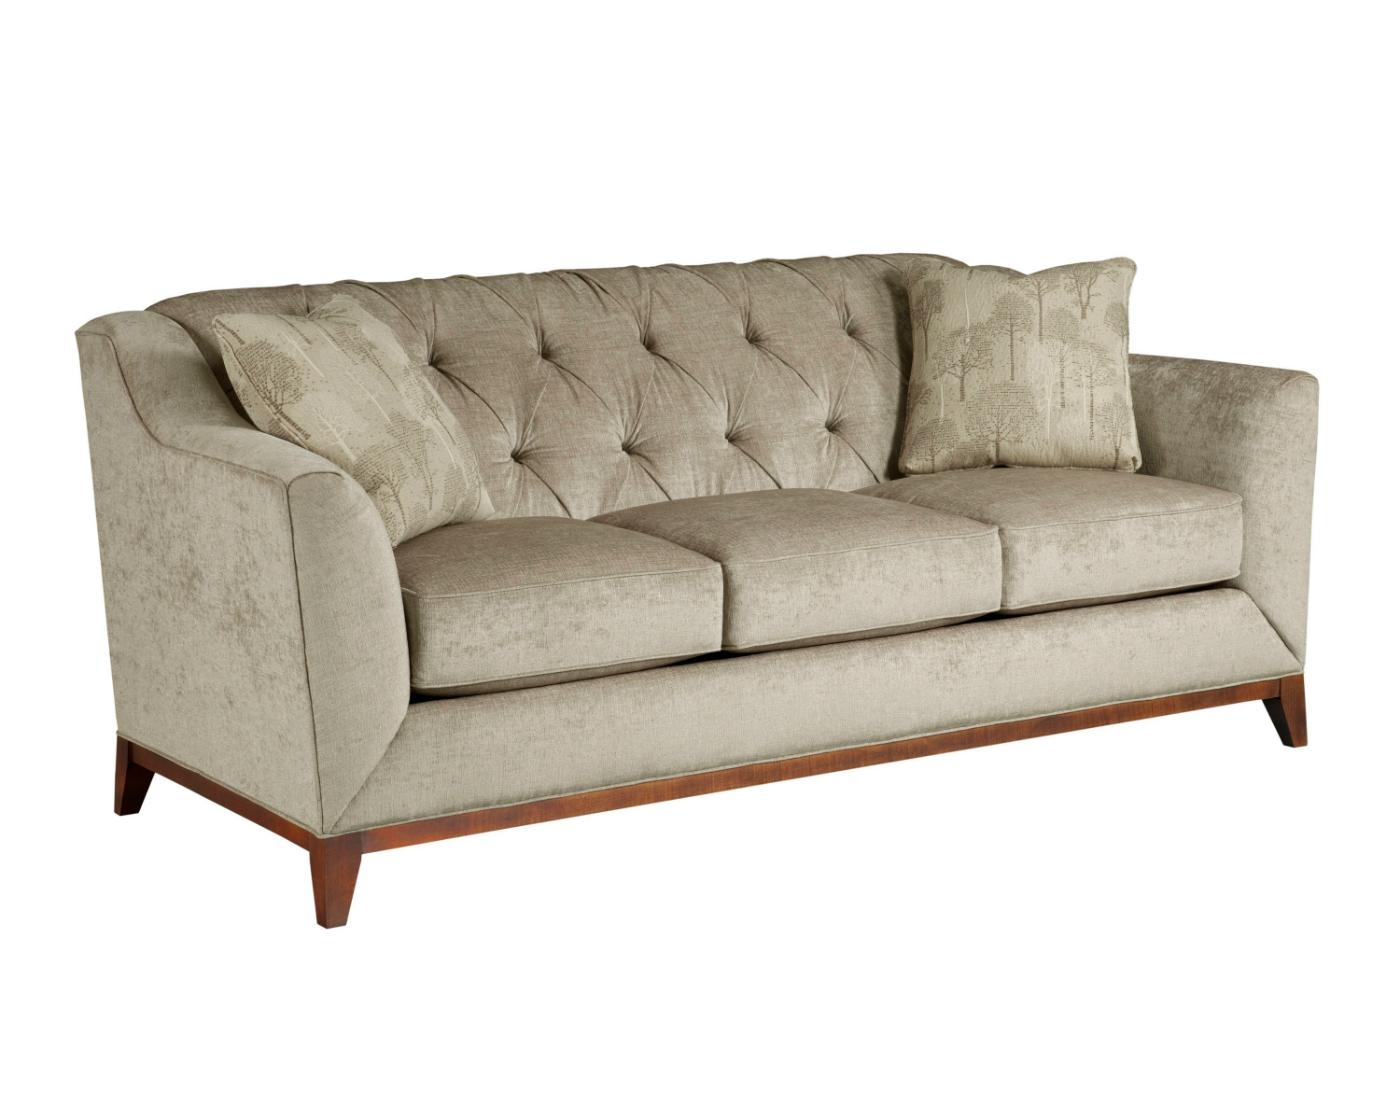 broyhill furniture sofa reviews leather repair sacramento perspectives review home co